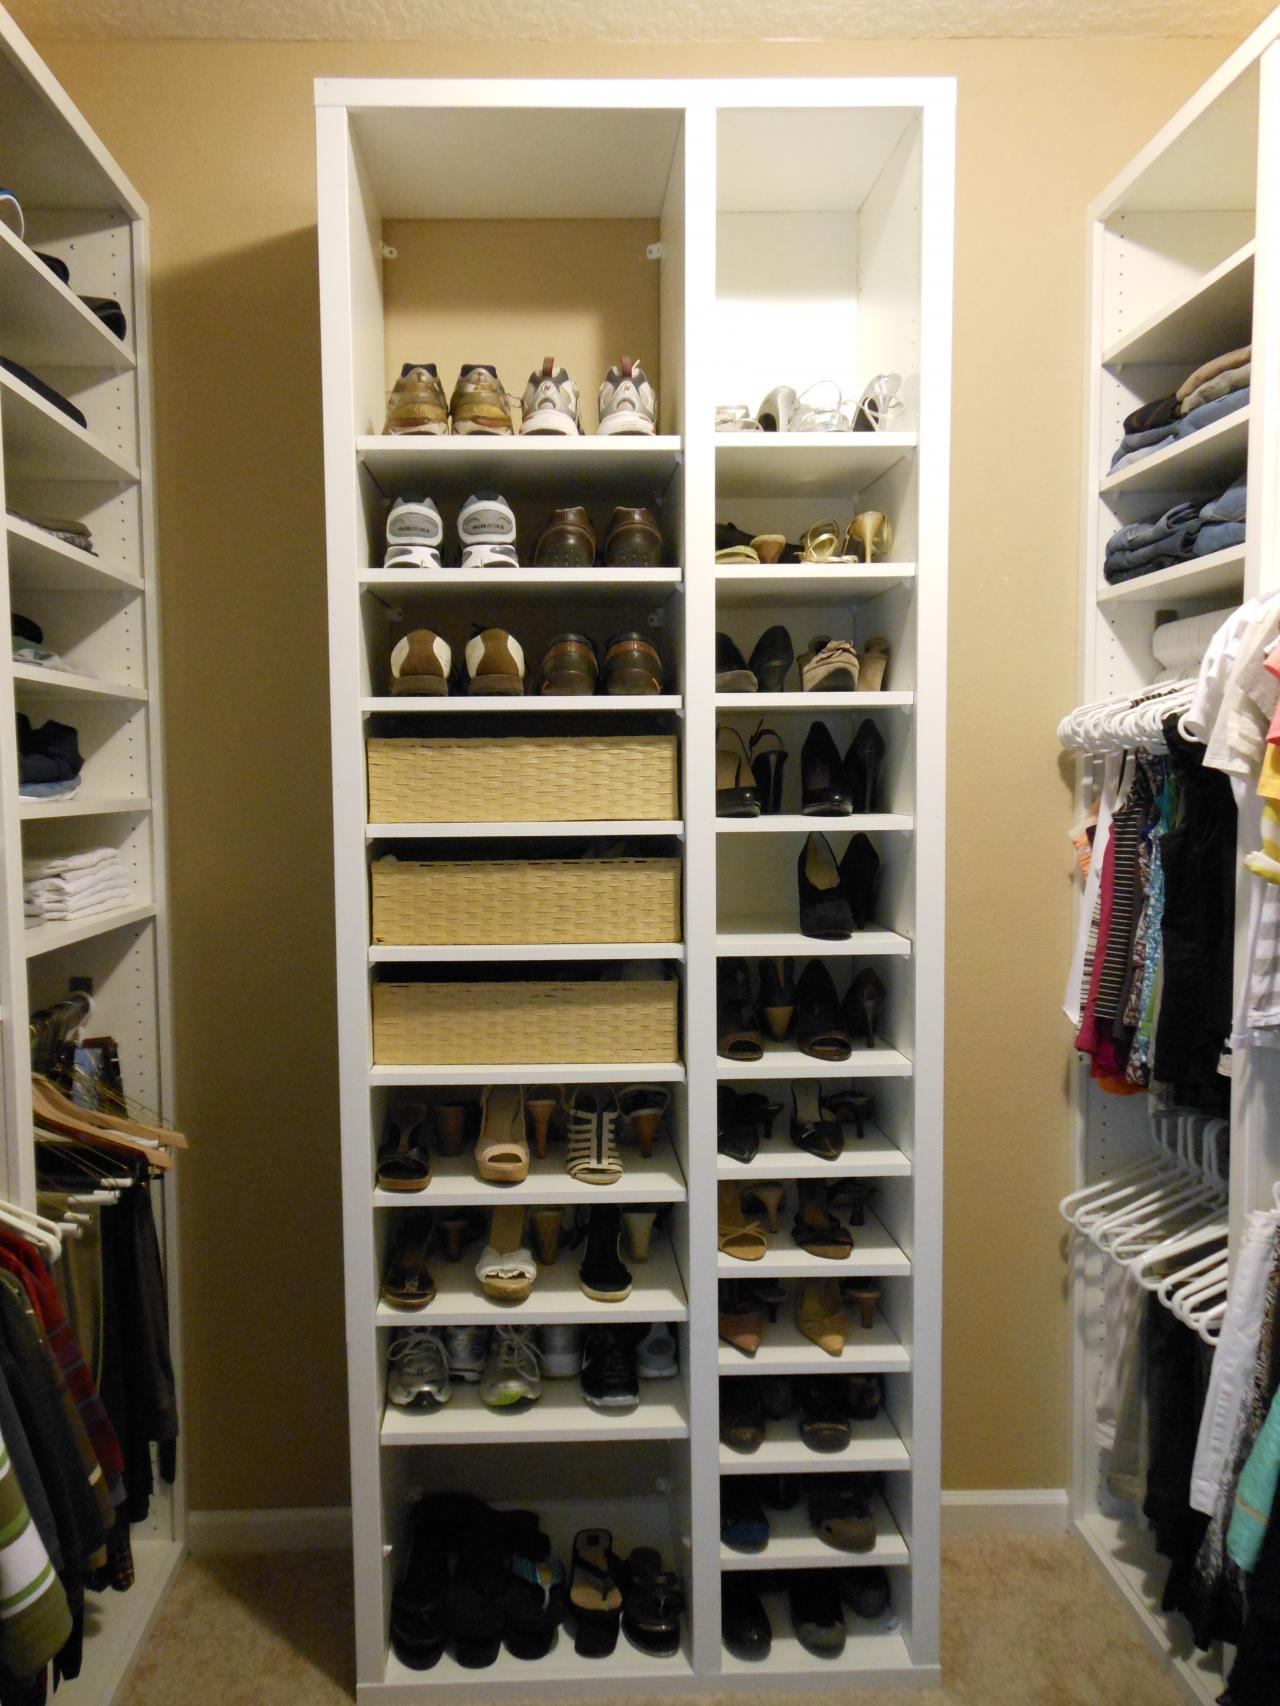 His u0026 Hers Walk in closet~Design/Build/ReSet (Shoes)